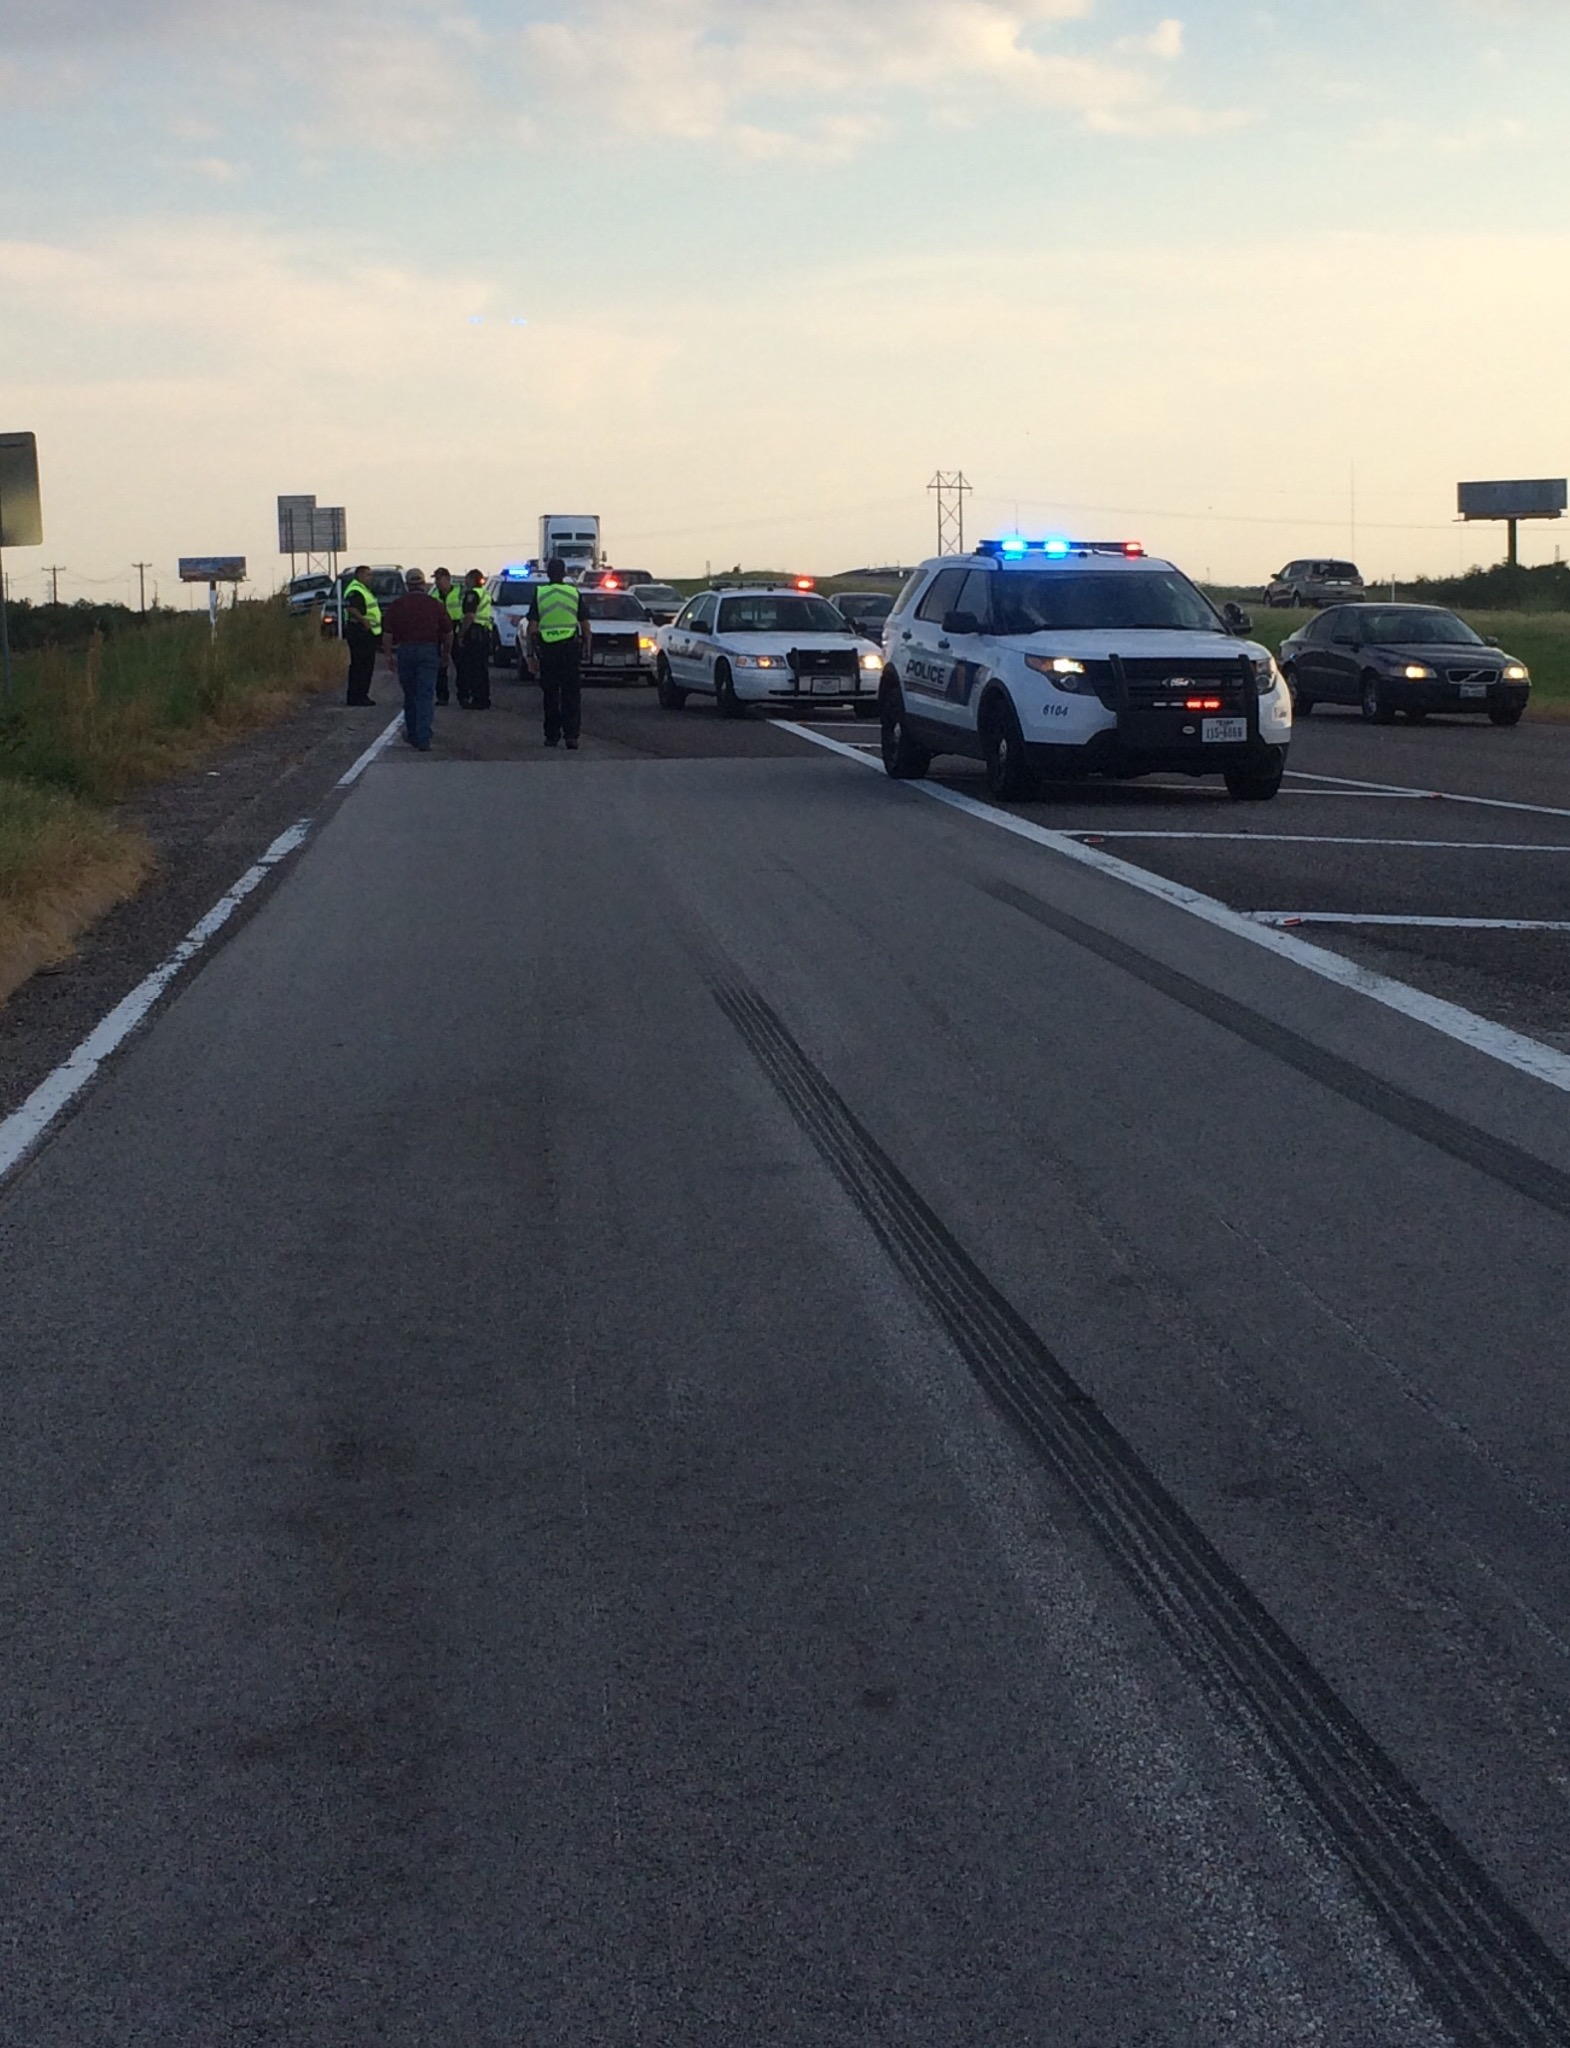 UPDATED** Fatality Accident on I-44 @ Exit 5 | WFPD NOW